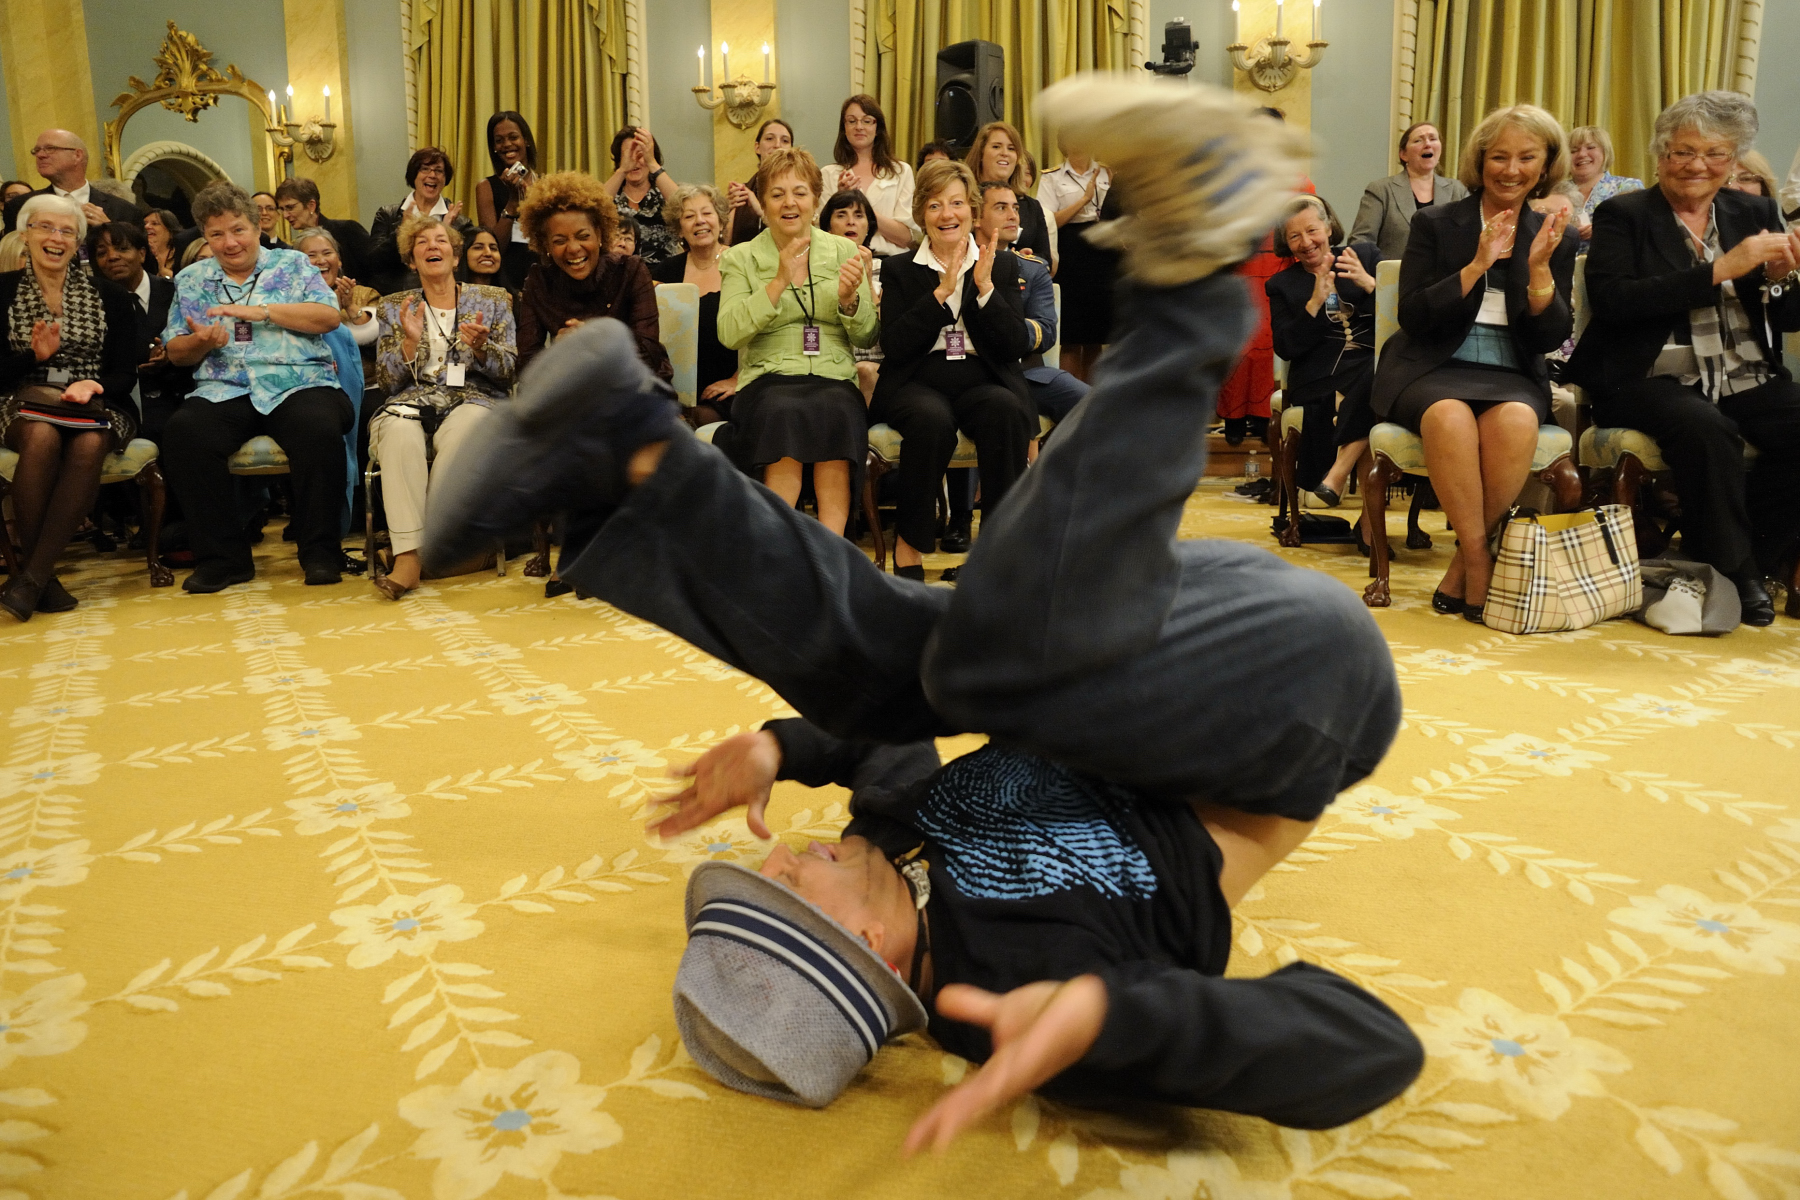 A bit of breakdancing...